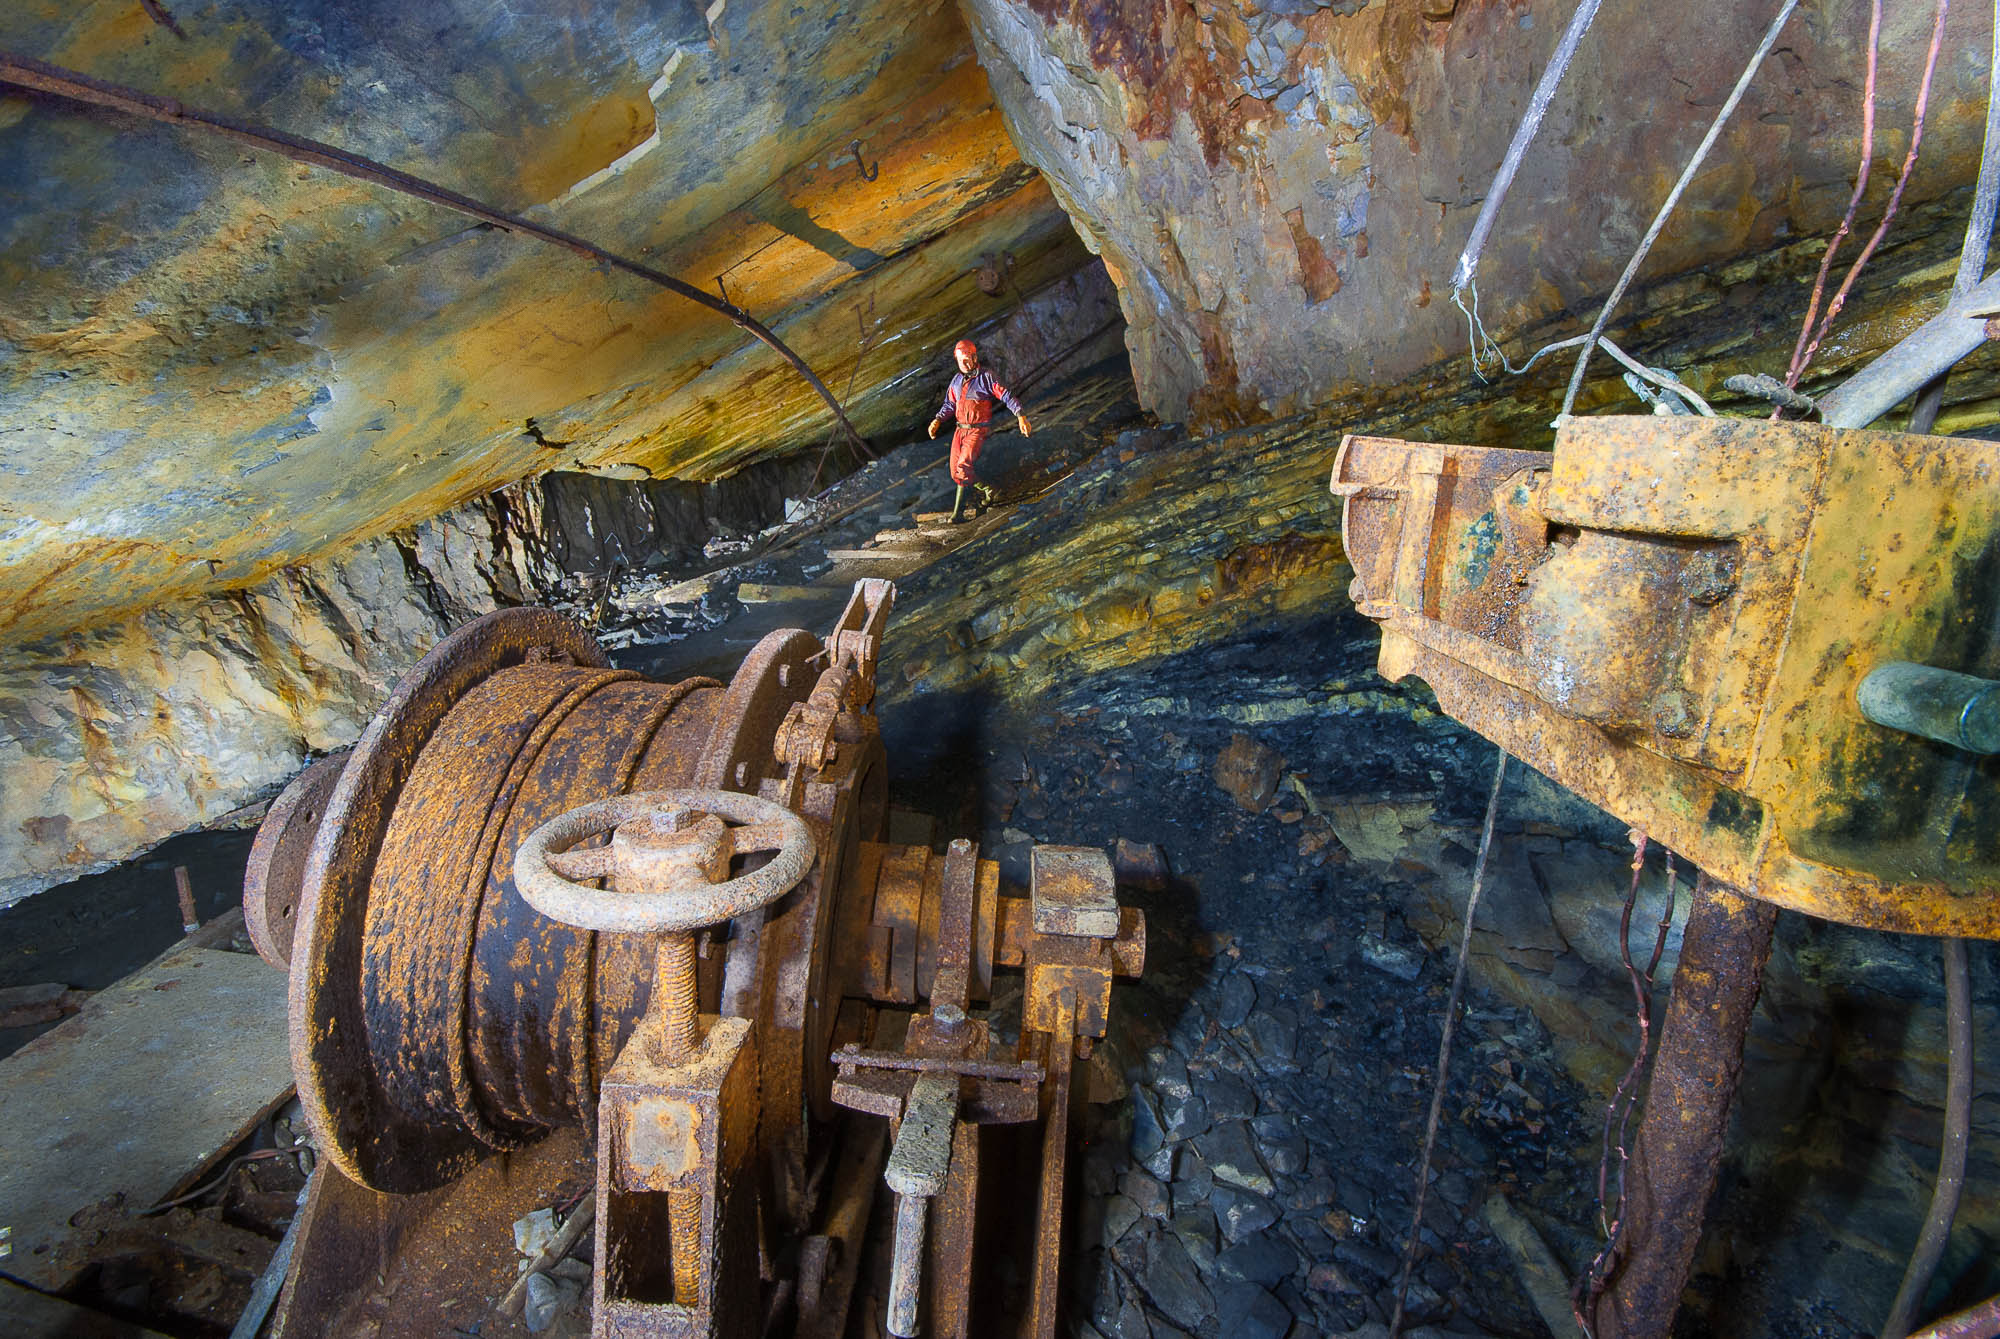 Explore caves and disused mines